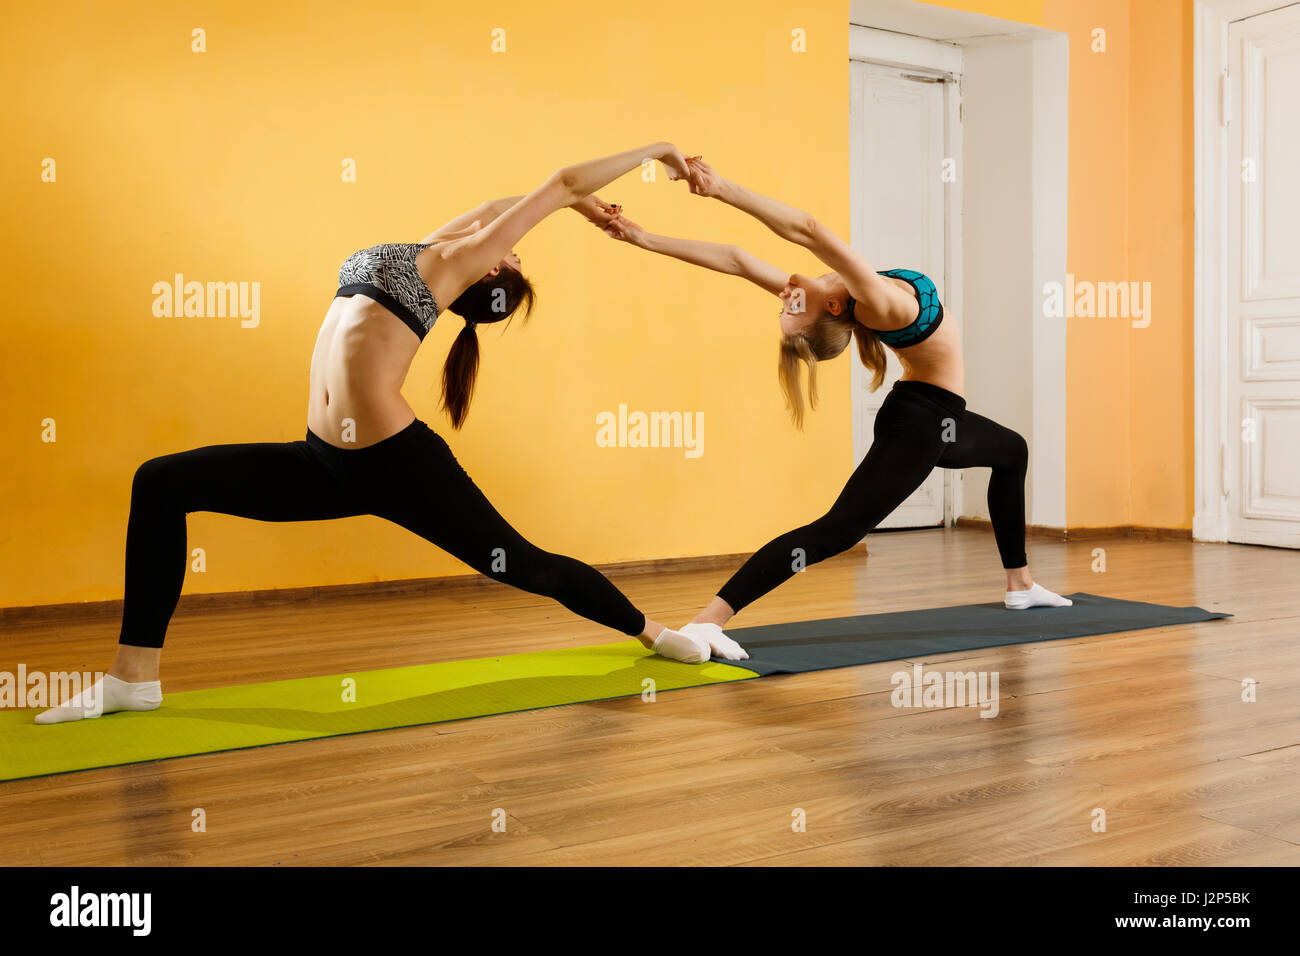 Two athletes doing stretching exercises - Stock Image